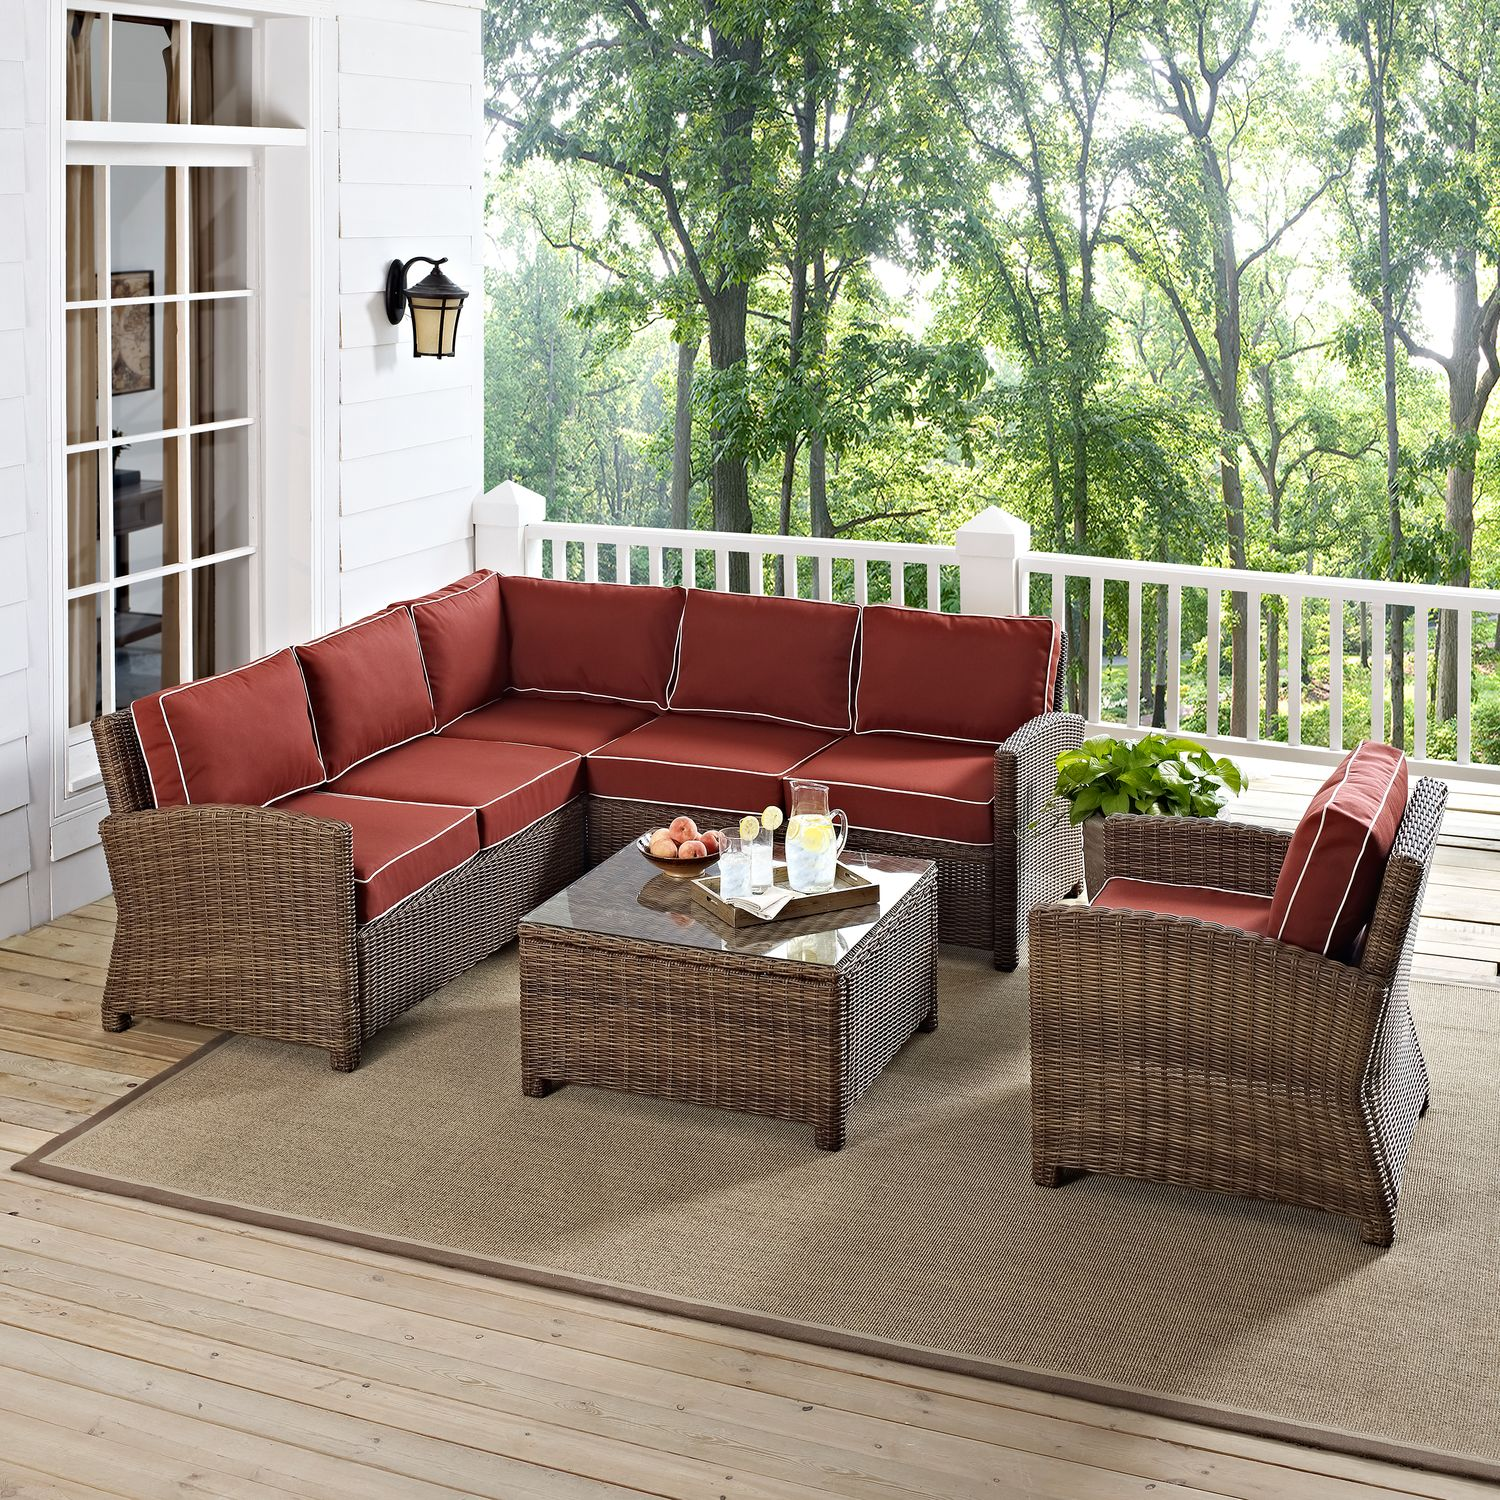 Patio Furniture Destin Fl: Destin 3-Piece Outdoor Sectional, Chair And Cocktail Table